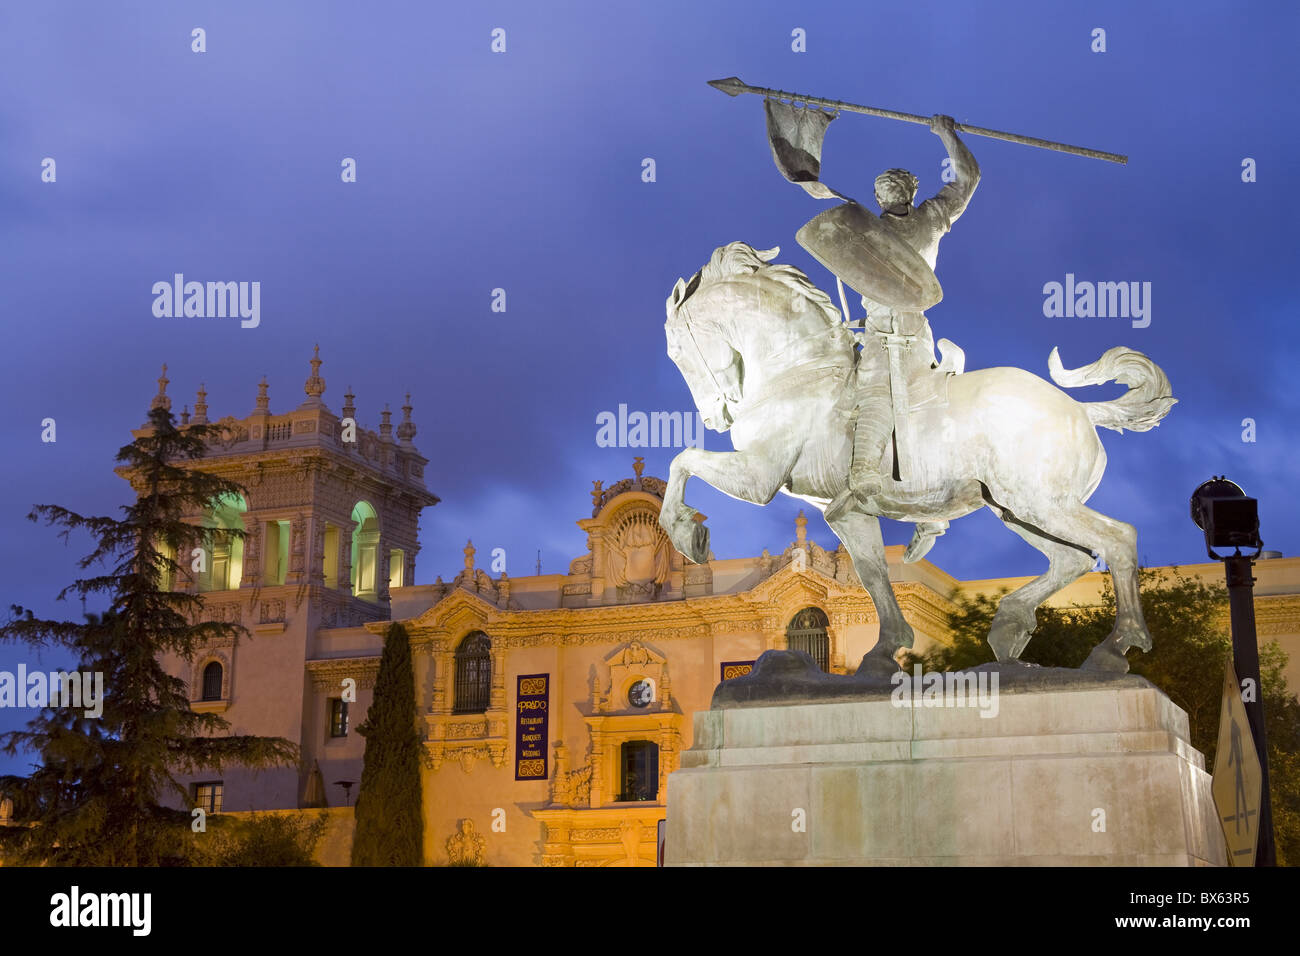 El Cid Statue and House of Hospitality in Balboa Park, San Diego, California, United States of America, North America - Stock Image